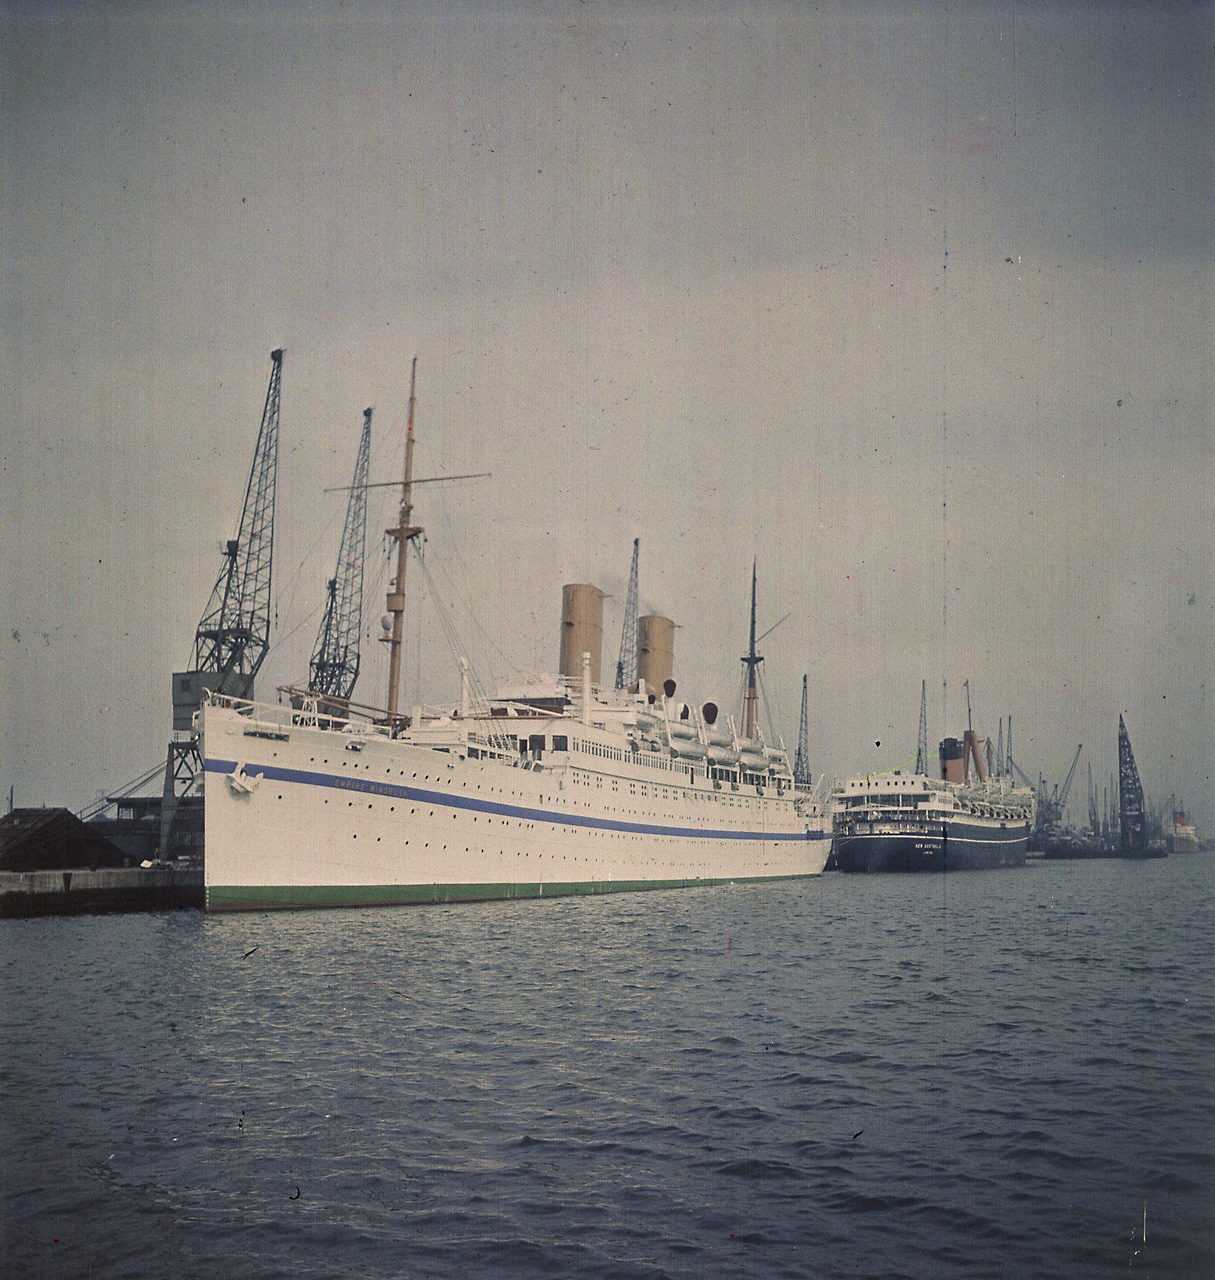 Image of the Empire Windrush